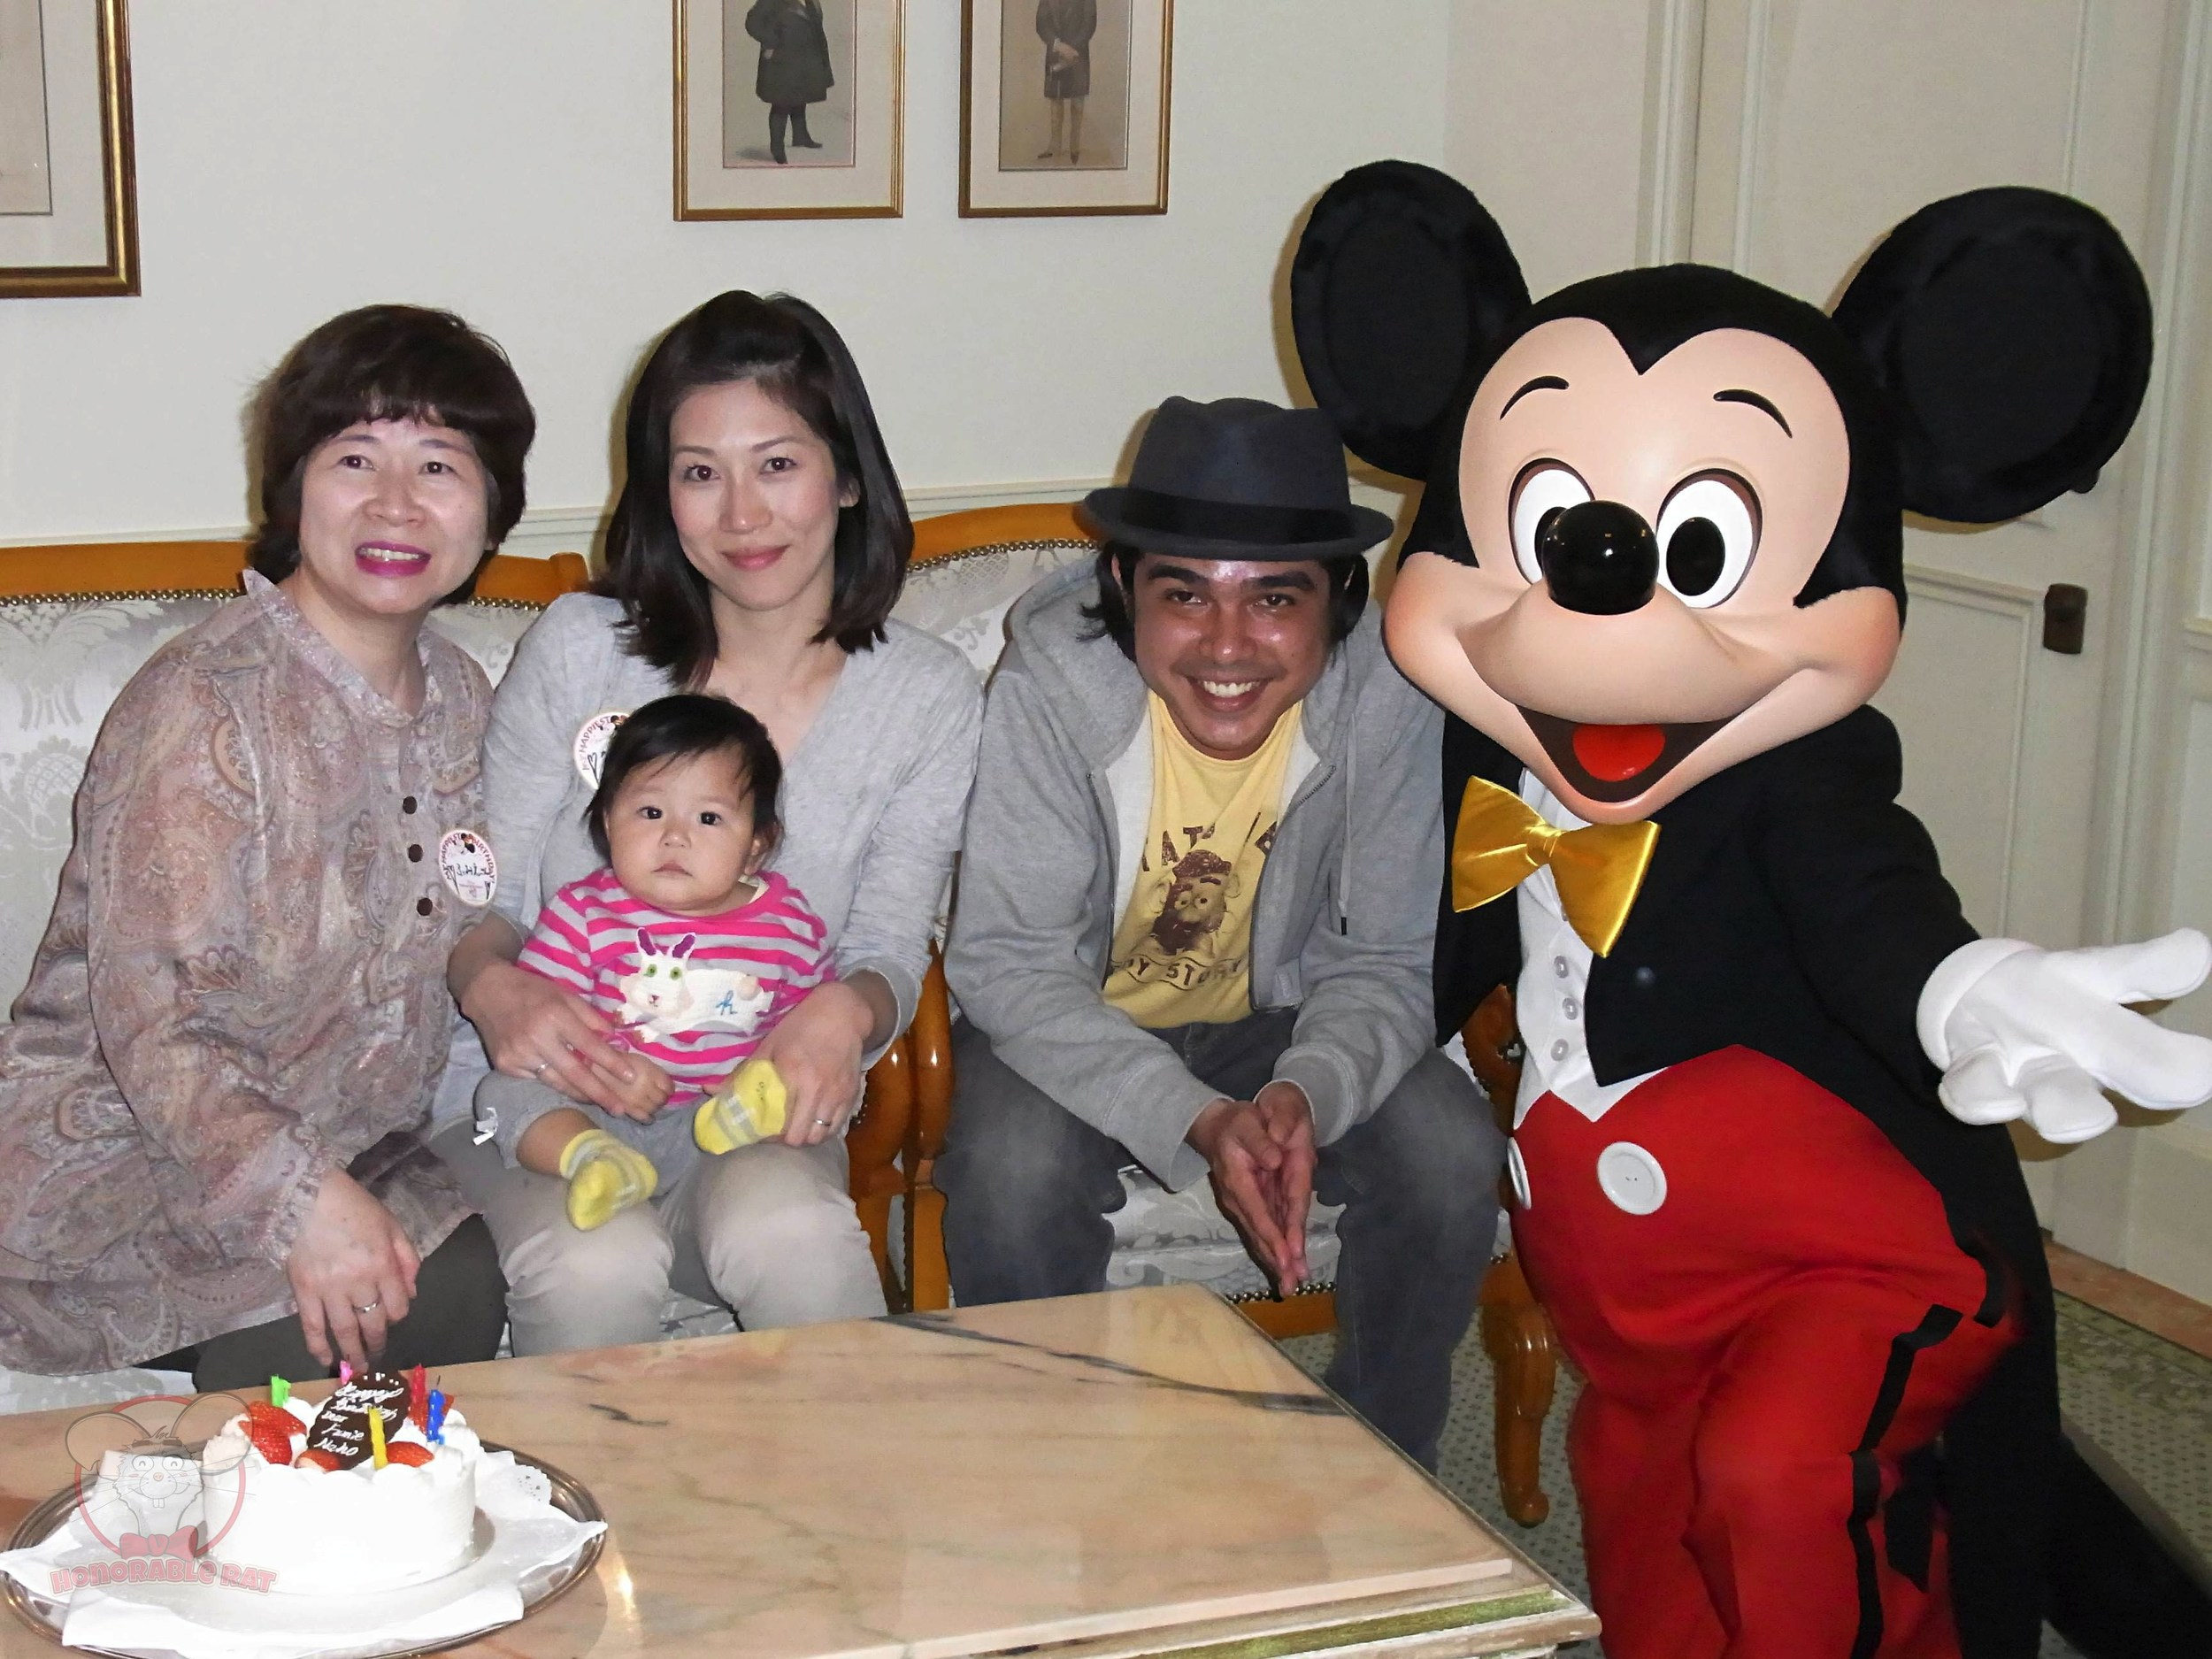 Final picture with Mickey in an exclusive room in Club 33.